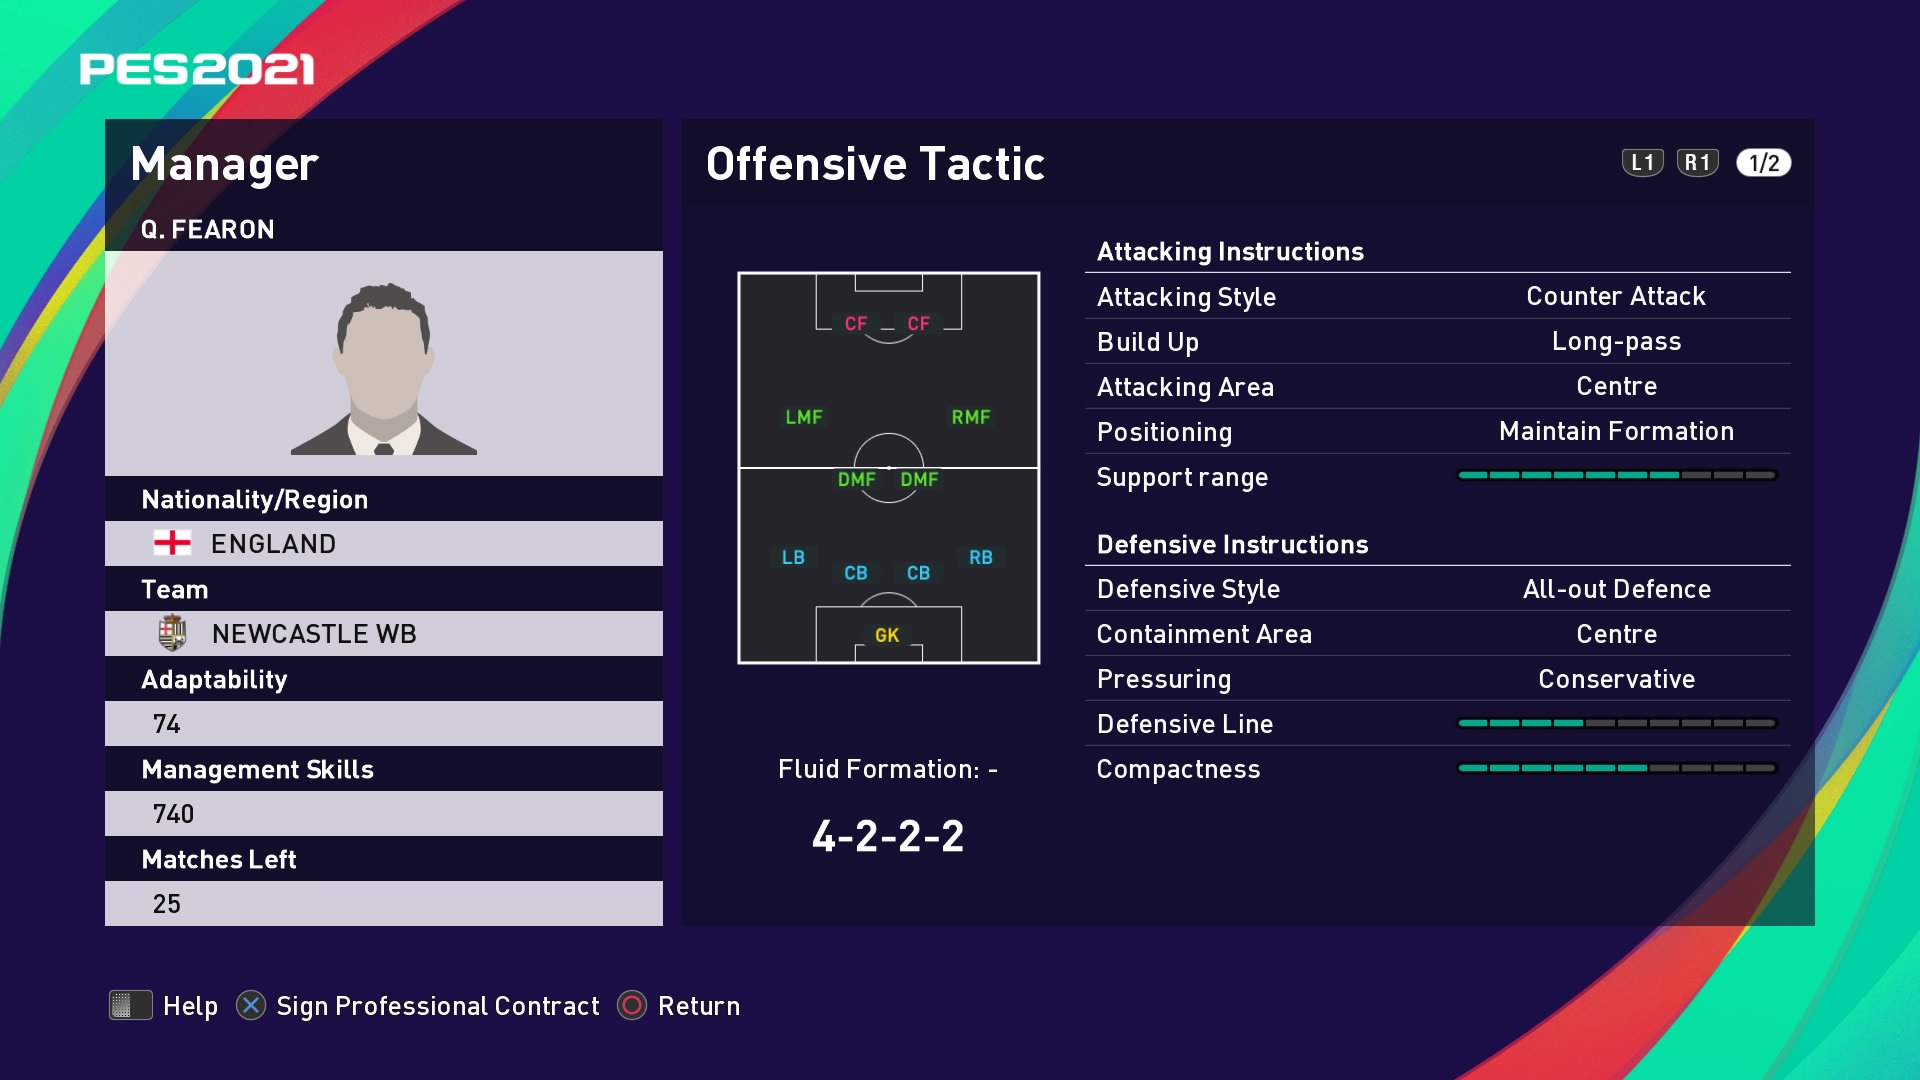 Q. Fearon (Steve Bruce) Offensive Tactic in PES 2021 myClub